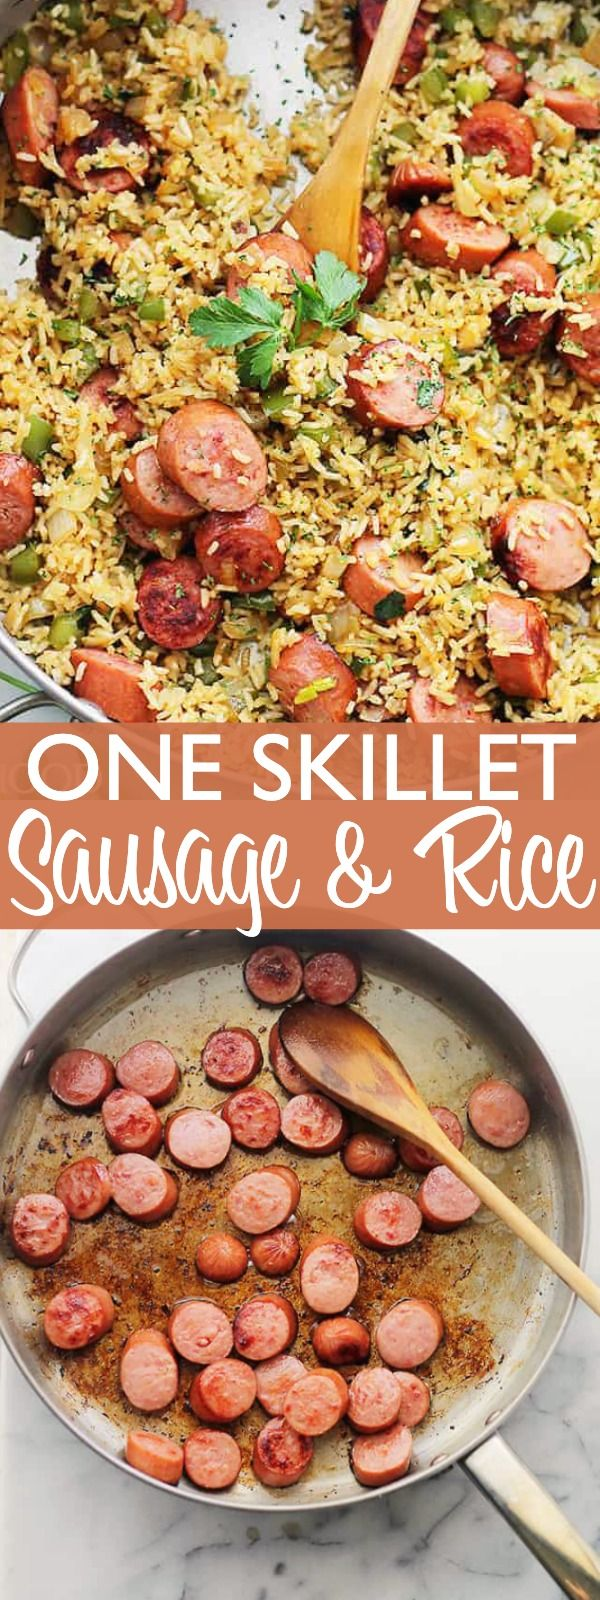 One Skillet Sausage and Rice - Sausage with Rice is an easy weeknight dinner recipe that you'll come back to again and again! It's an easy, 30-minute, meal with smoked turkey sausage, fluffy rice and flavorful veggies. #easysausagerecipes